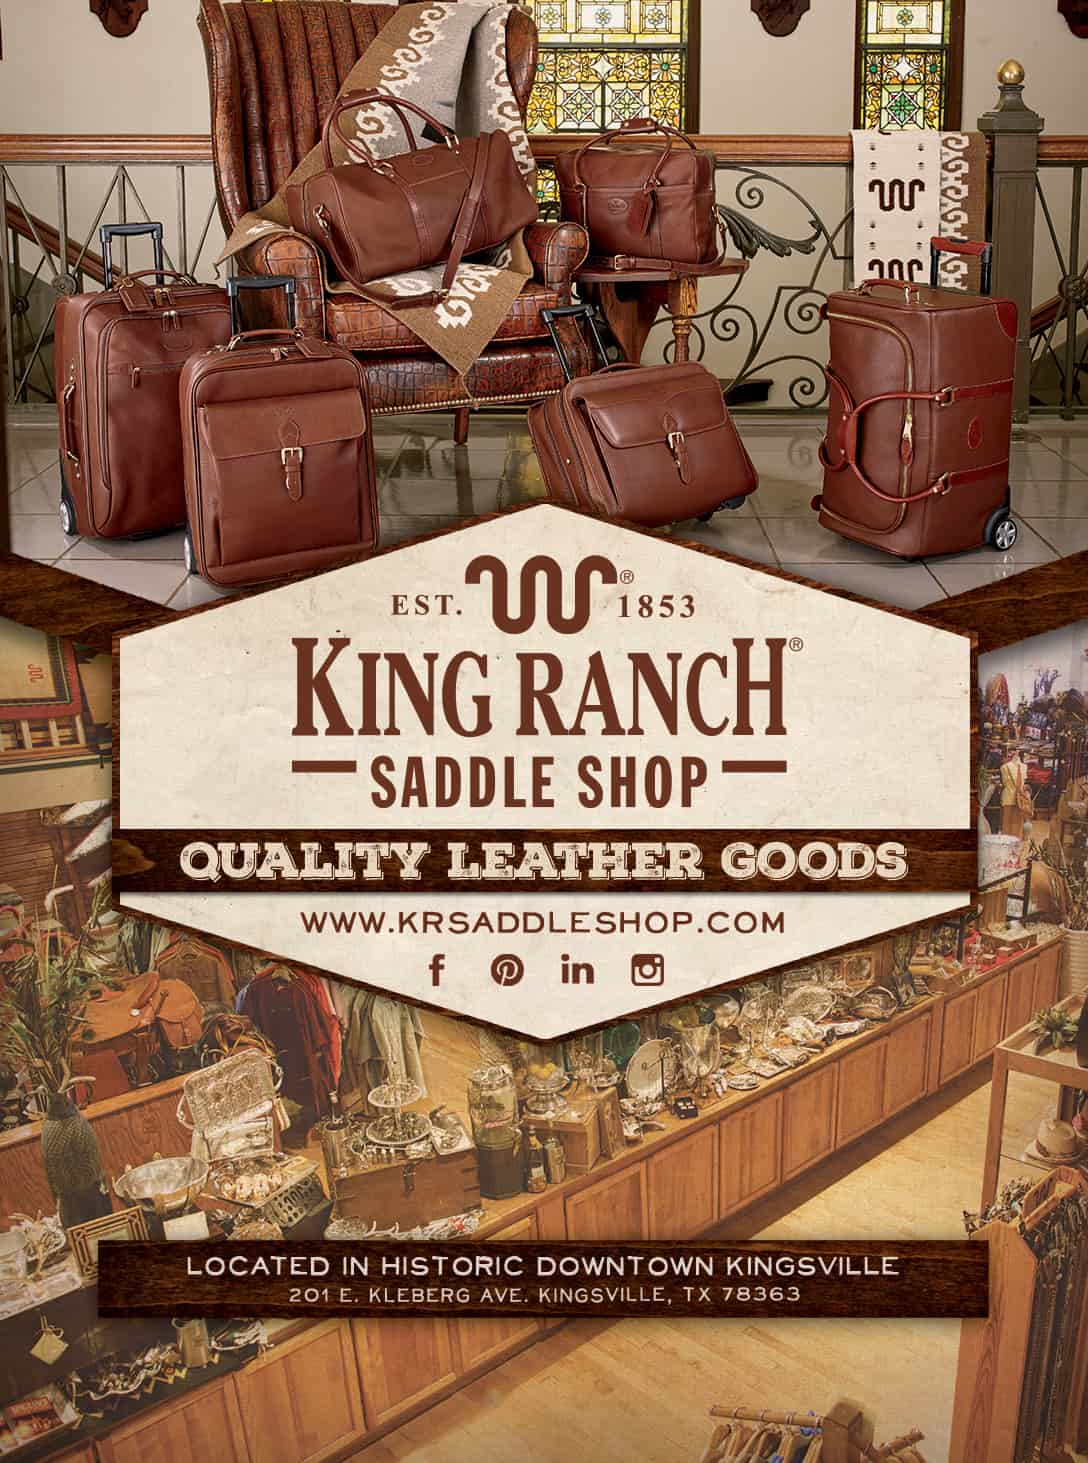 King Ranch Saddle Shop Visitors Guide Advertisement